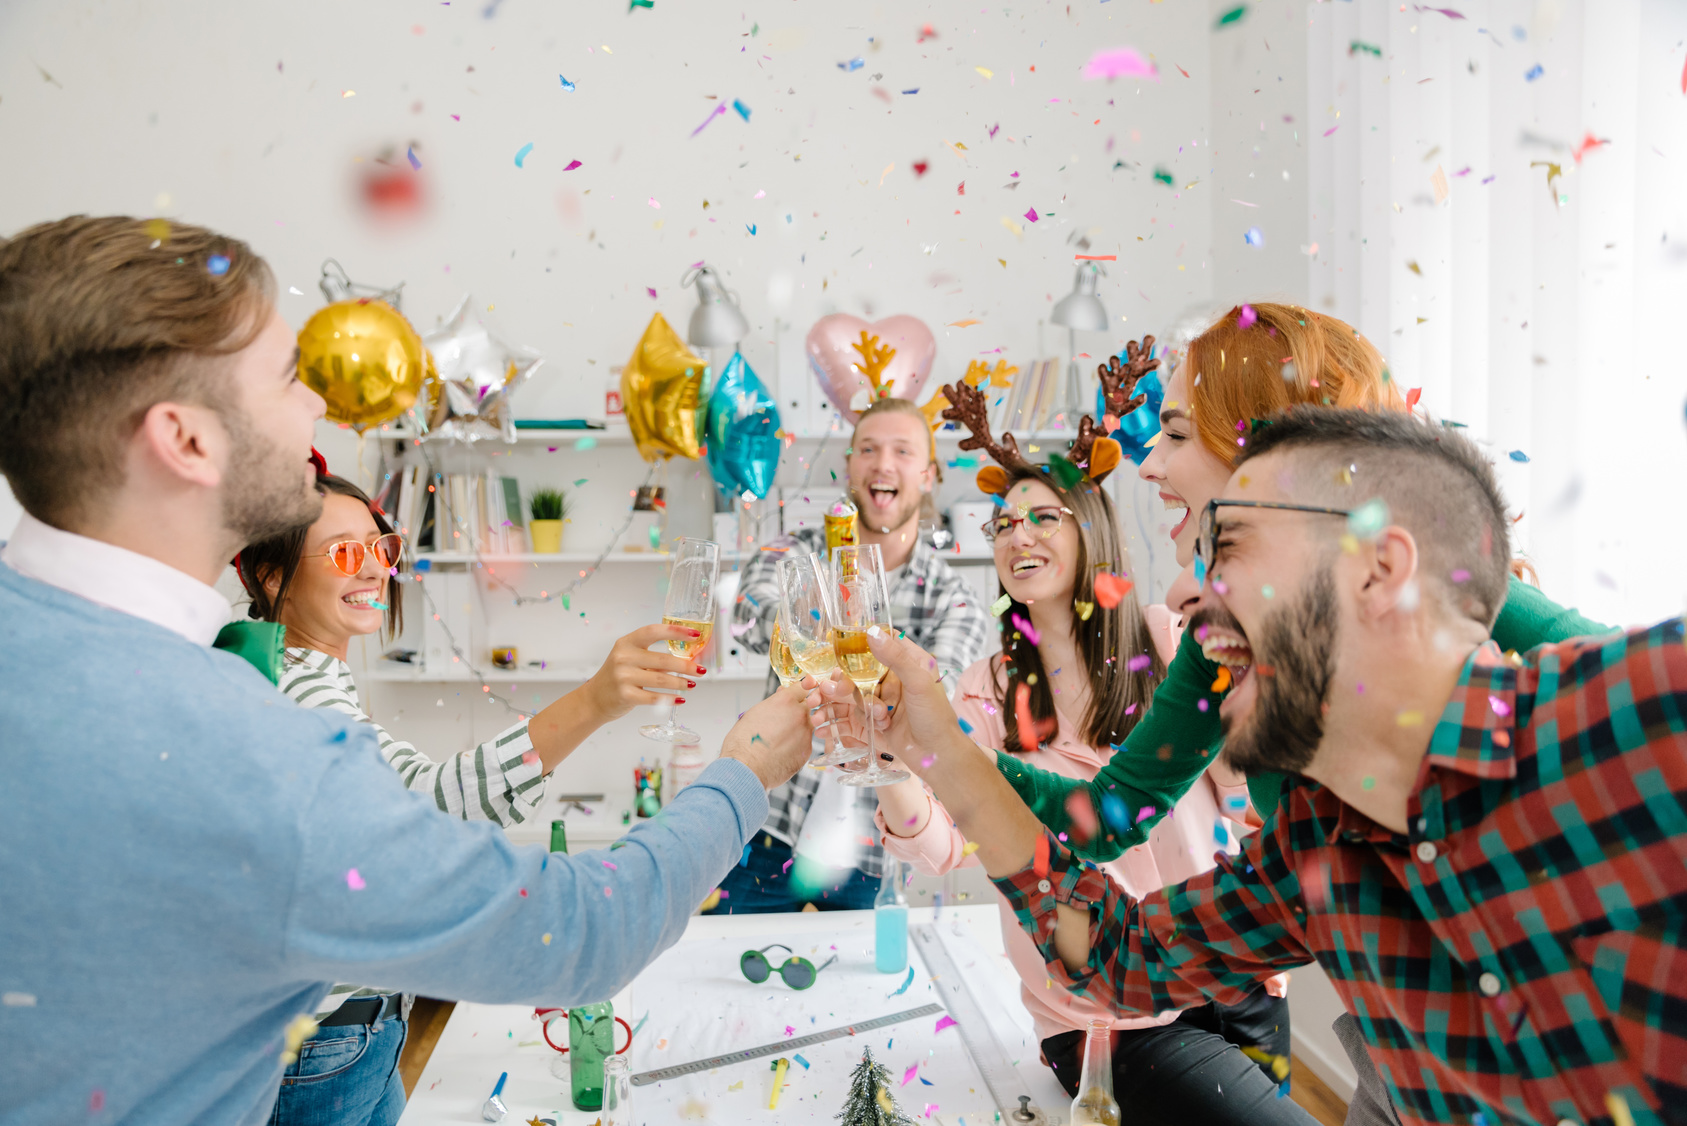 Workplace holiday party with confetti and champagne toast